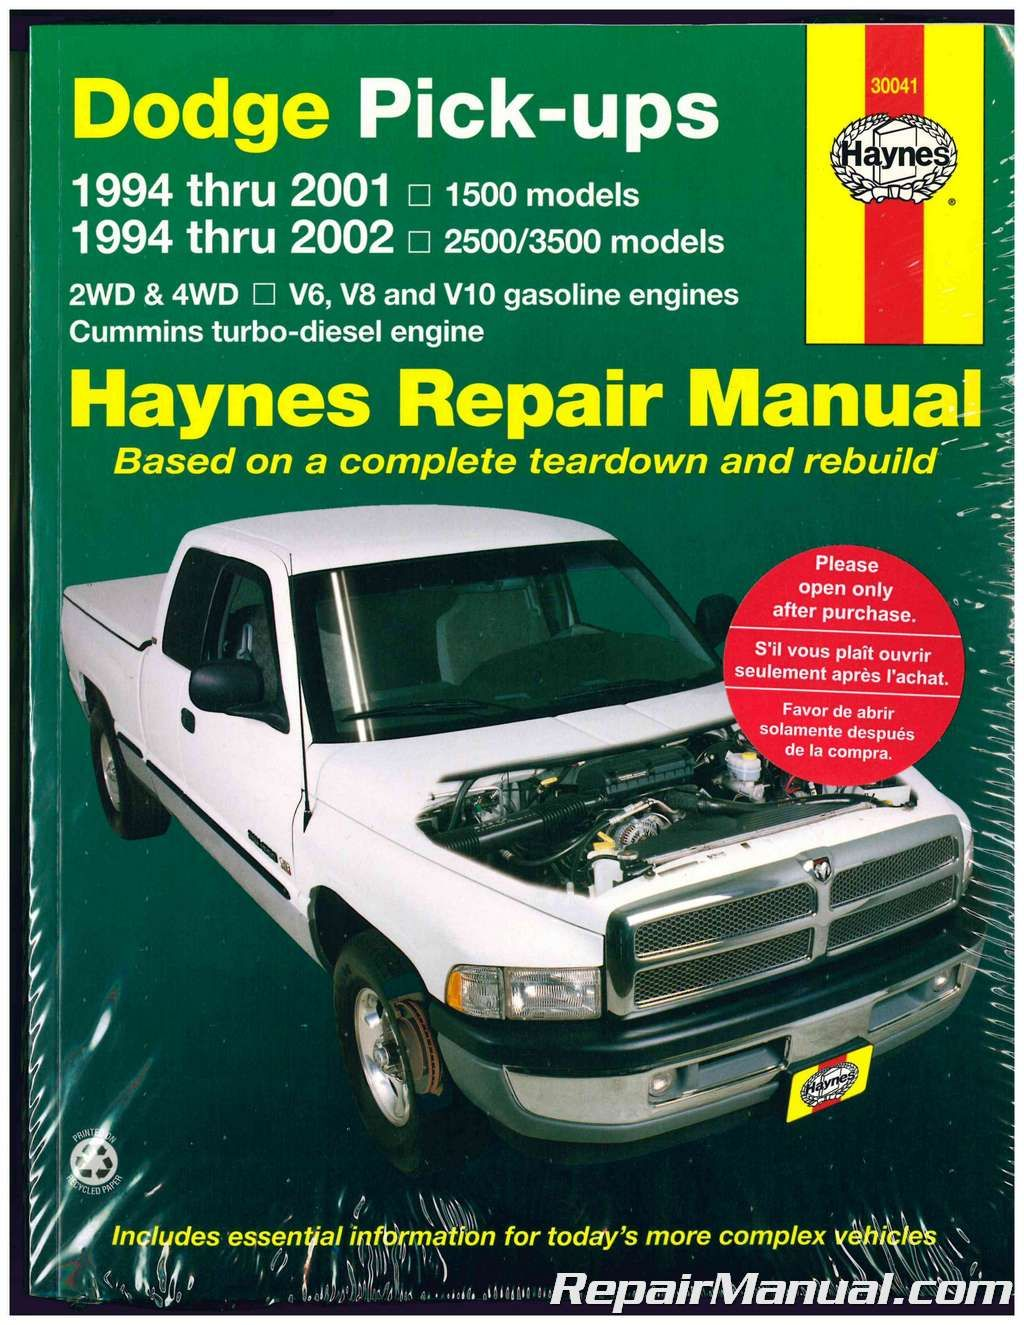 This Dodge Pickups Haynes Repair Manual provides service information for  1994-2002 Dodge Pickups. Get the Haynes workshop manual and fix it yourself.